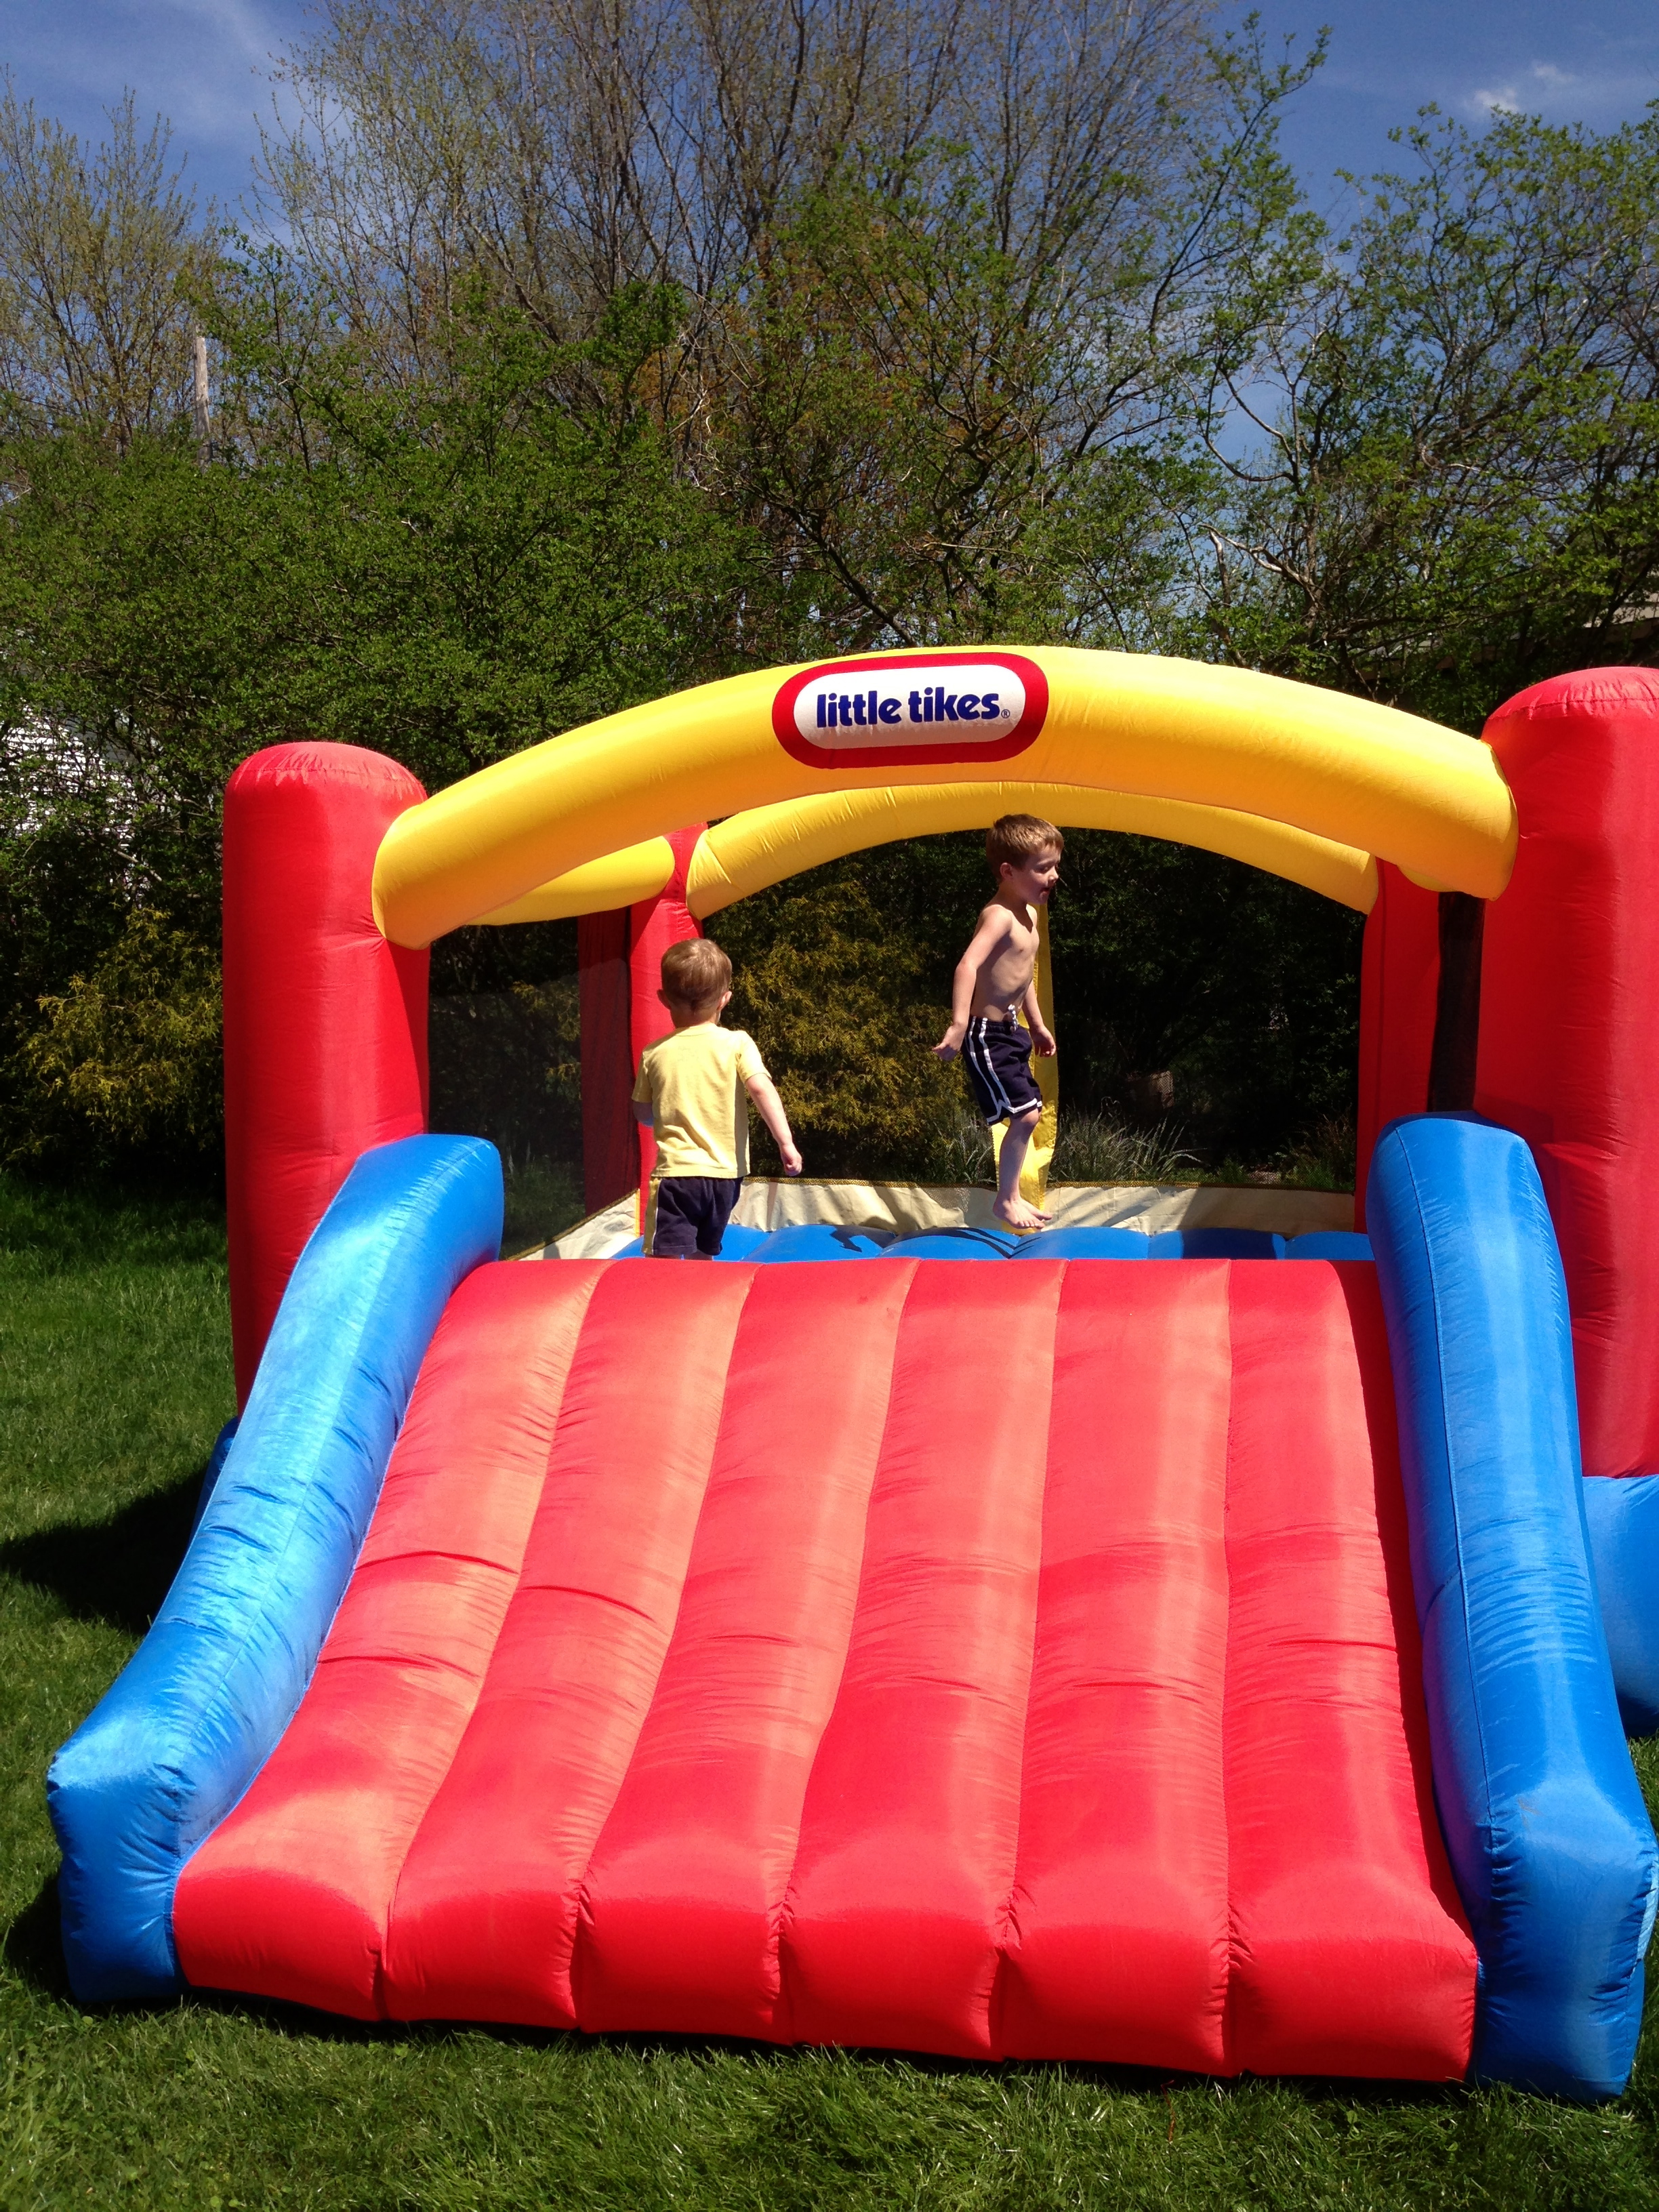 charming little tikes bounce house made of caoutchouc with slide for play yard ideas